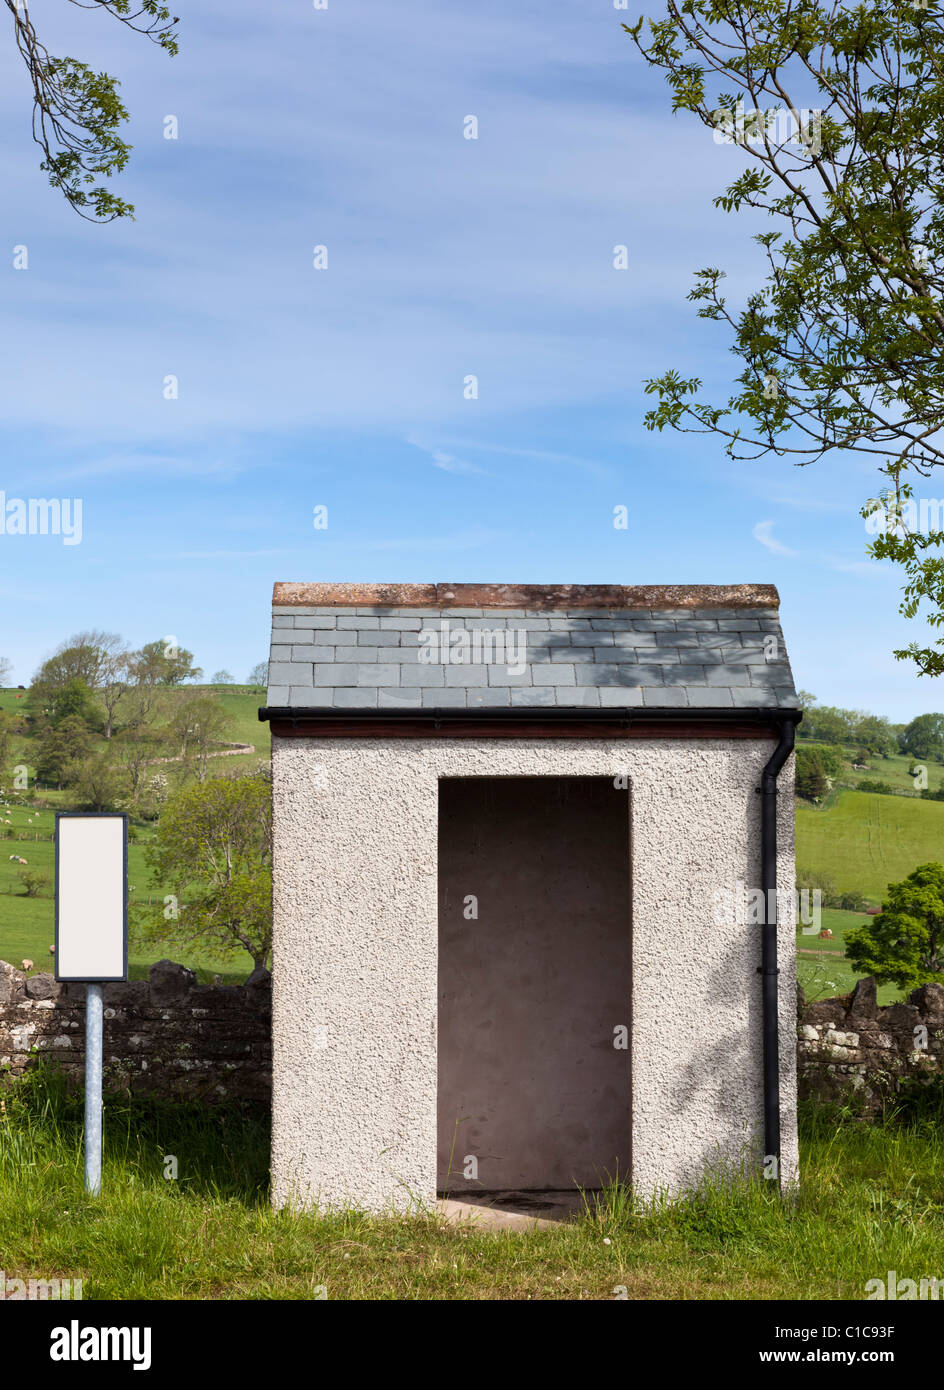 Bus stop - Small rural countryside bus stop and shelter with blank sign, England UK - Stock Image